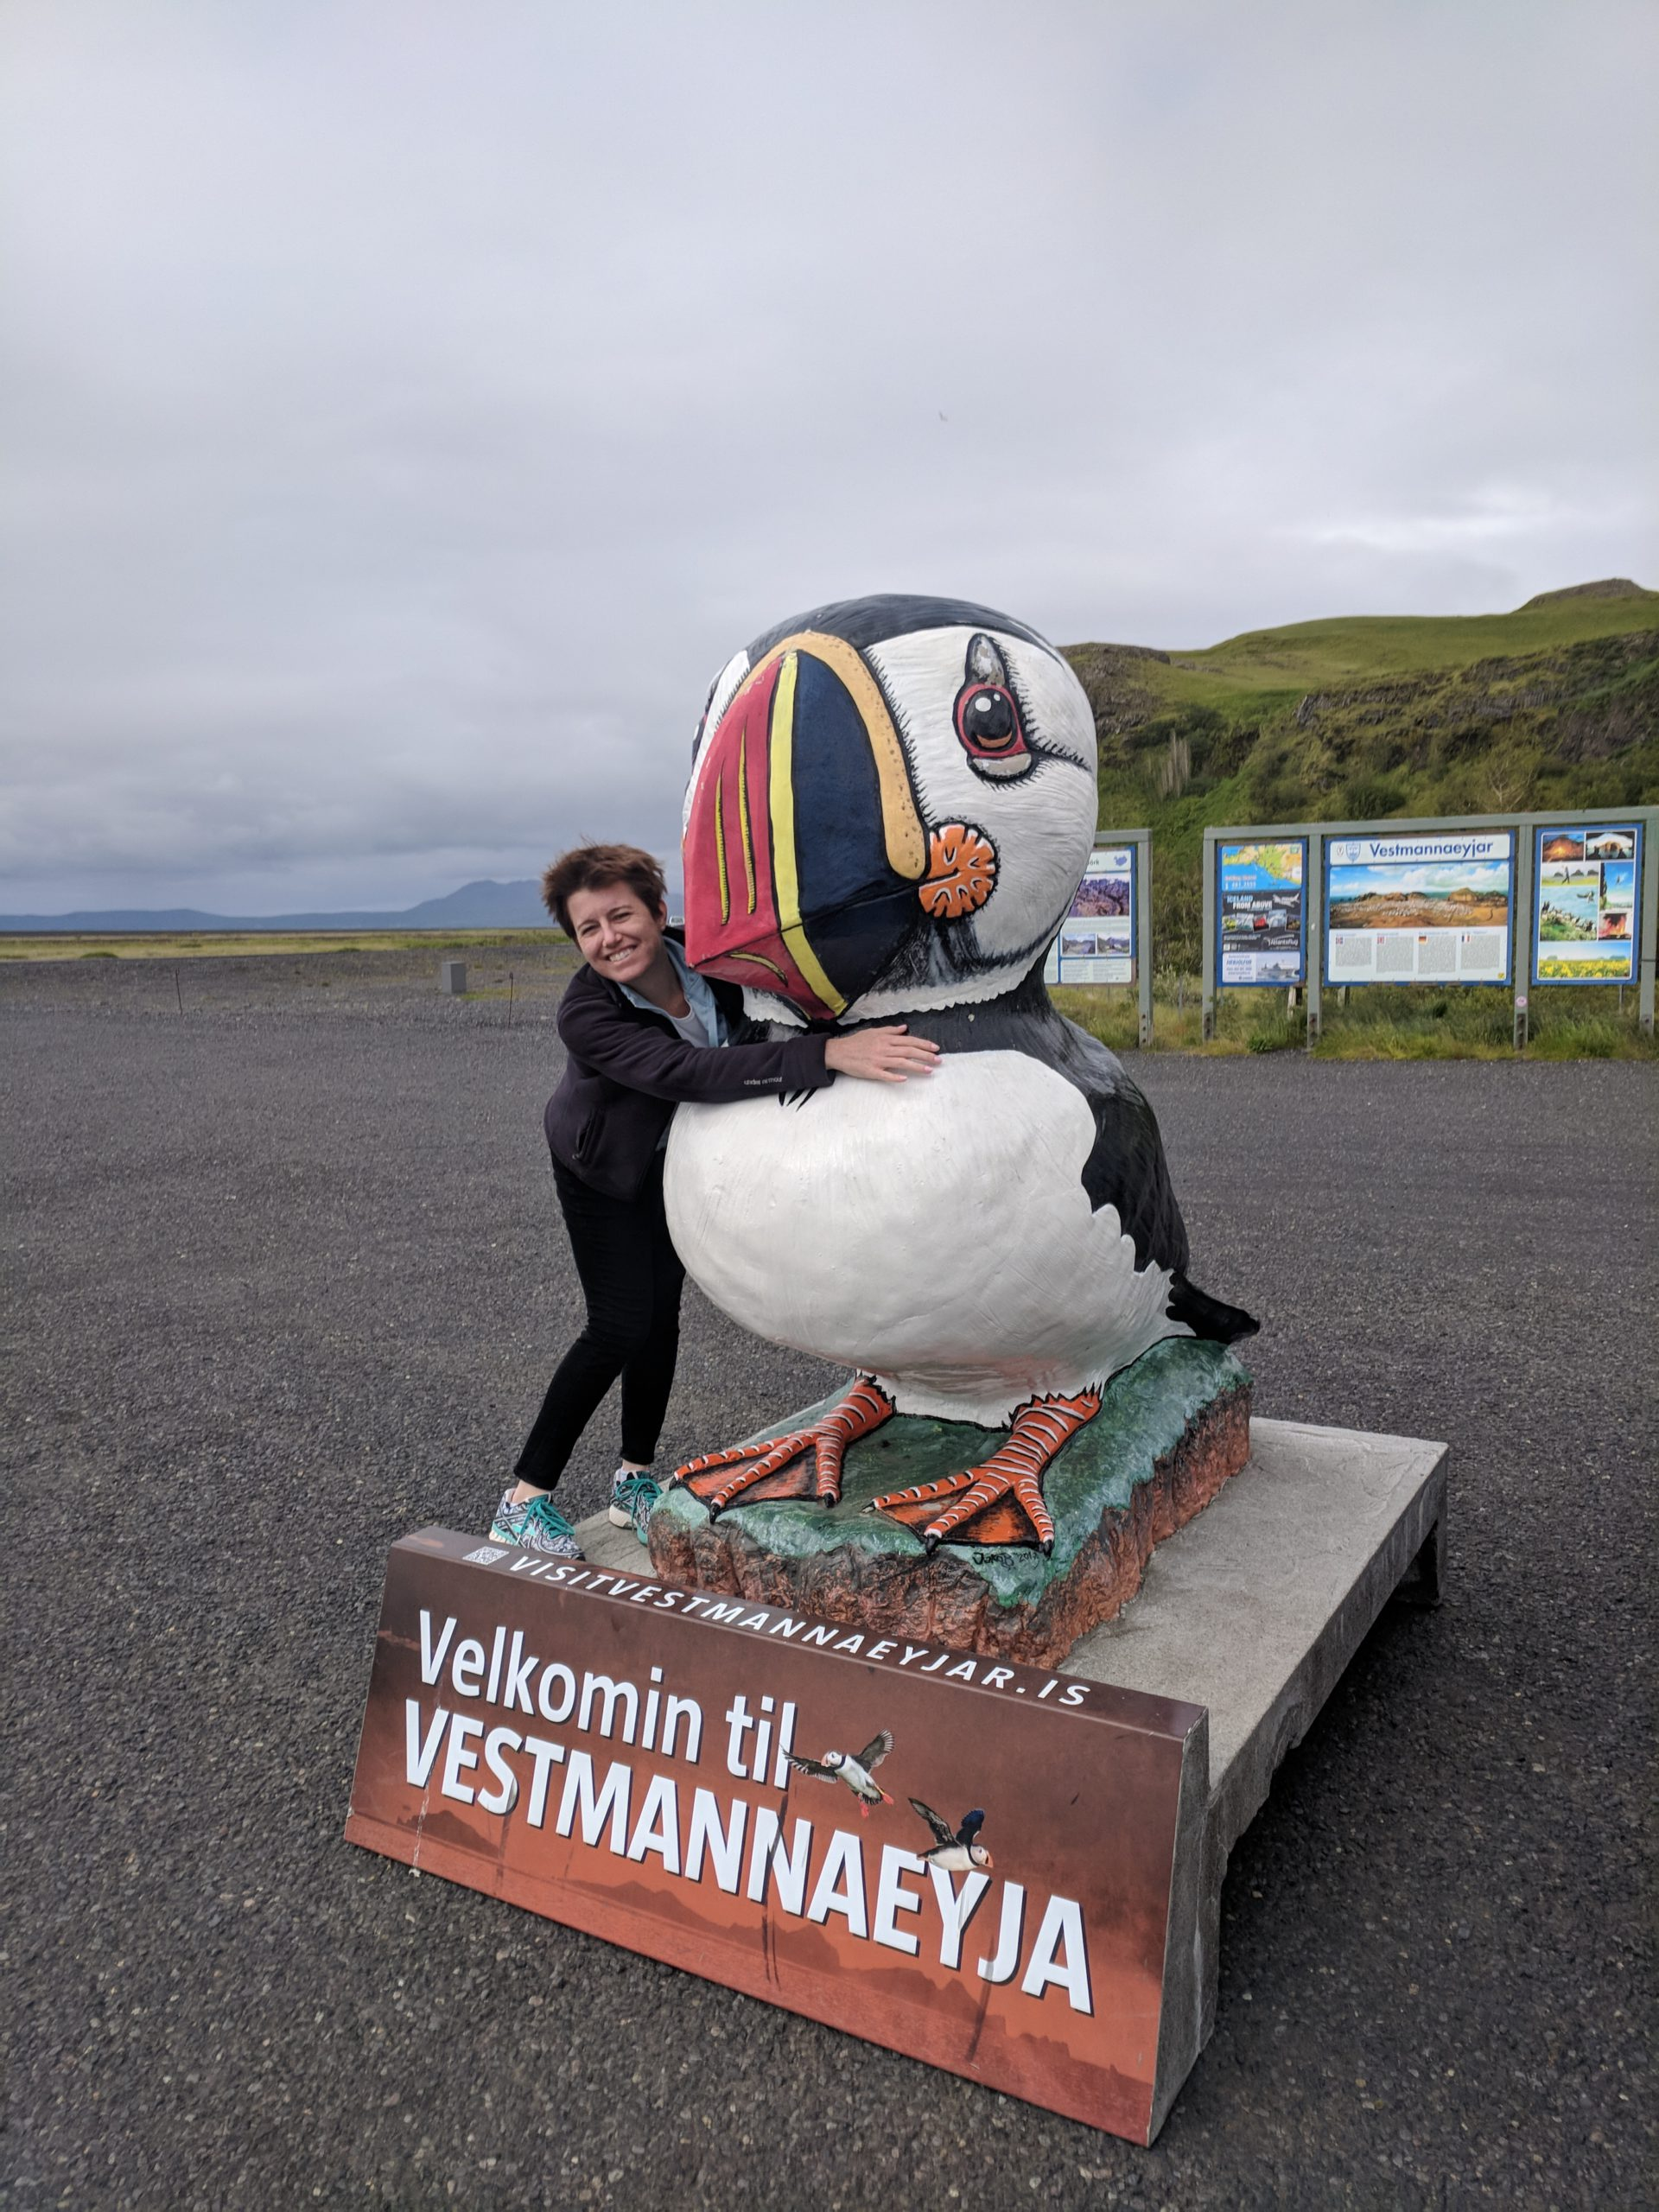 Iceland Campervan Trip – Part 1